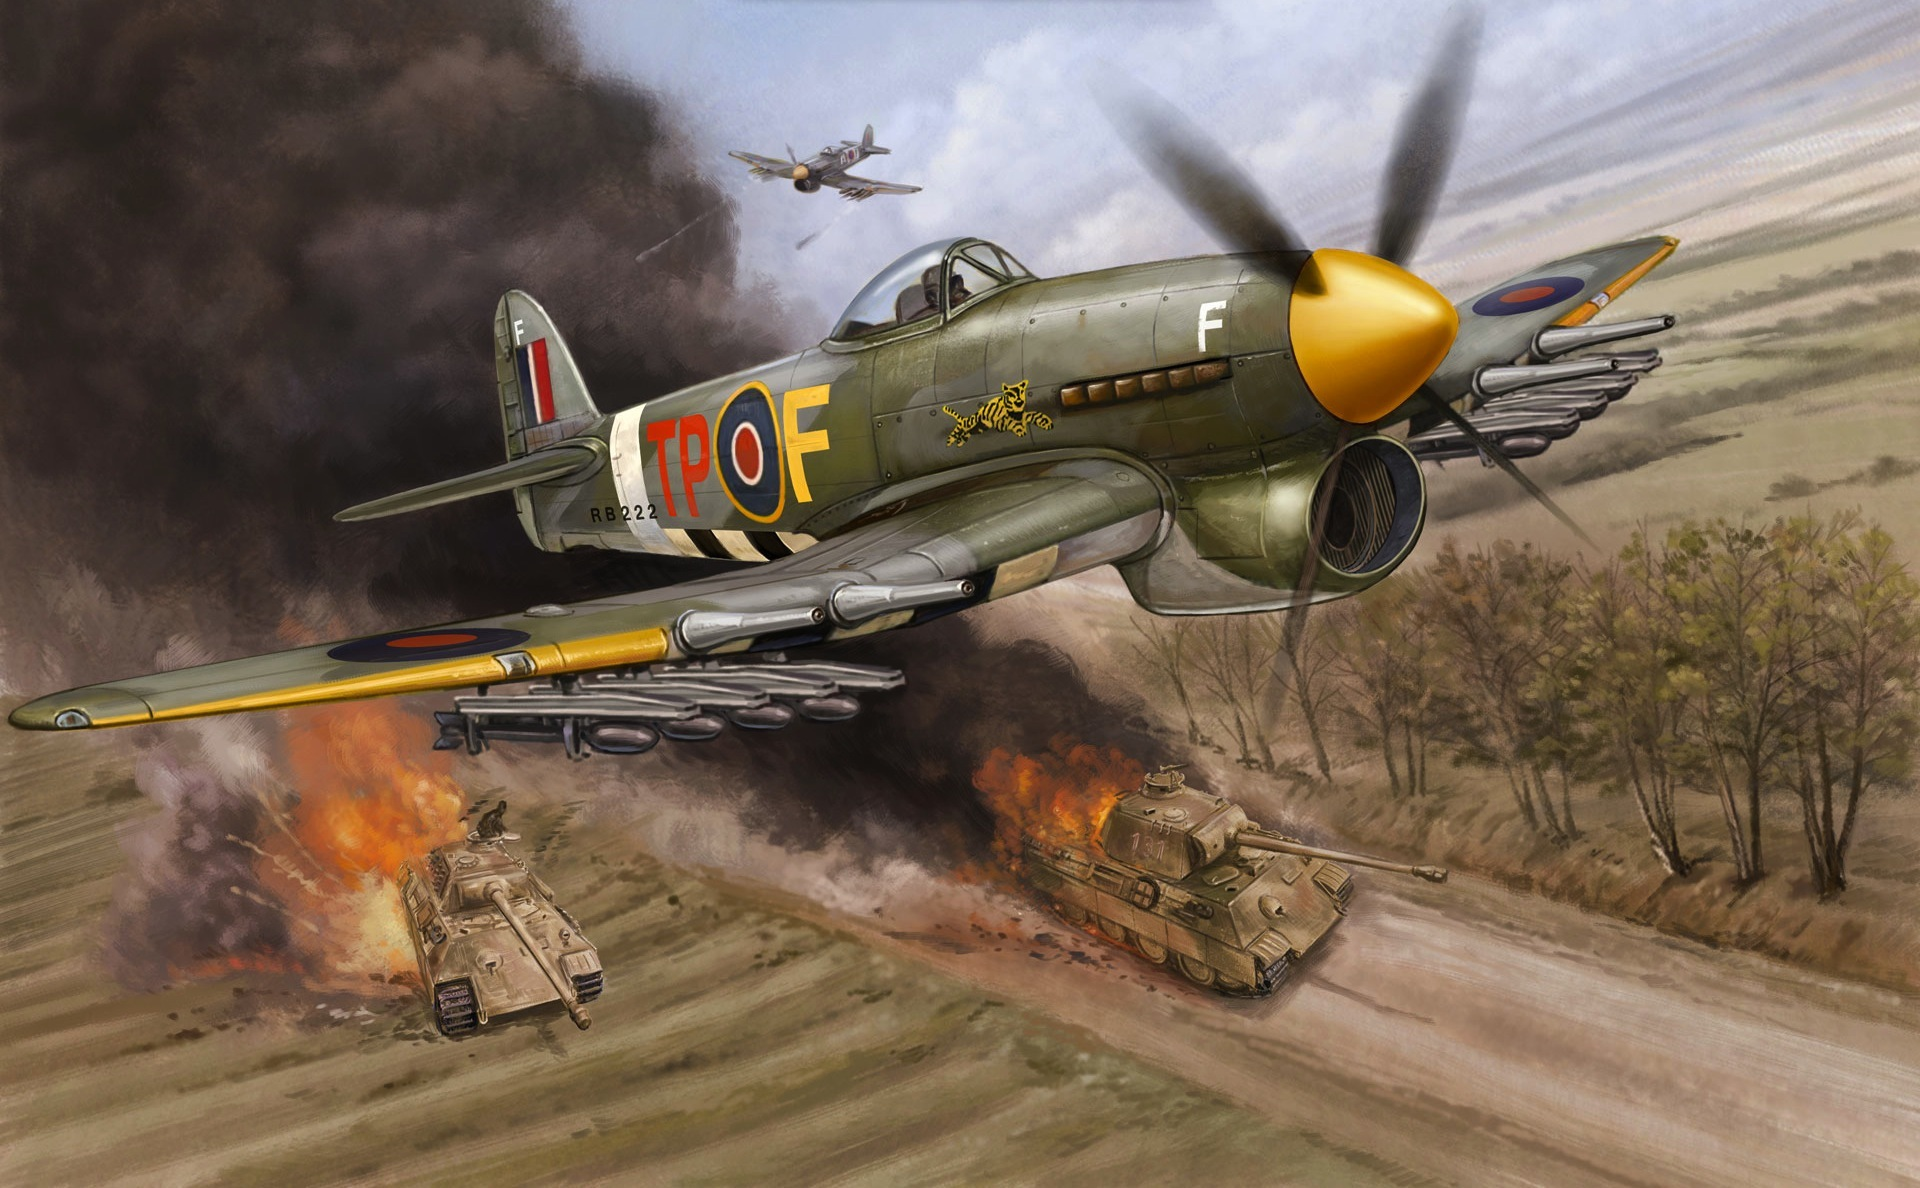 Aircraft War military art HD Wallpaper